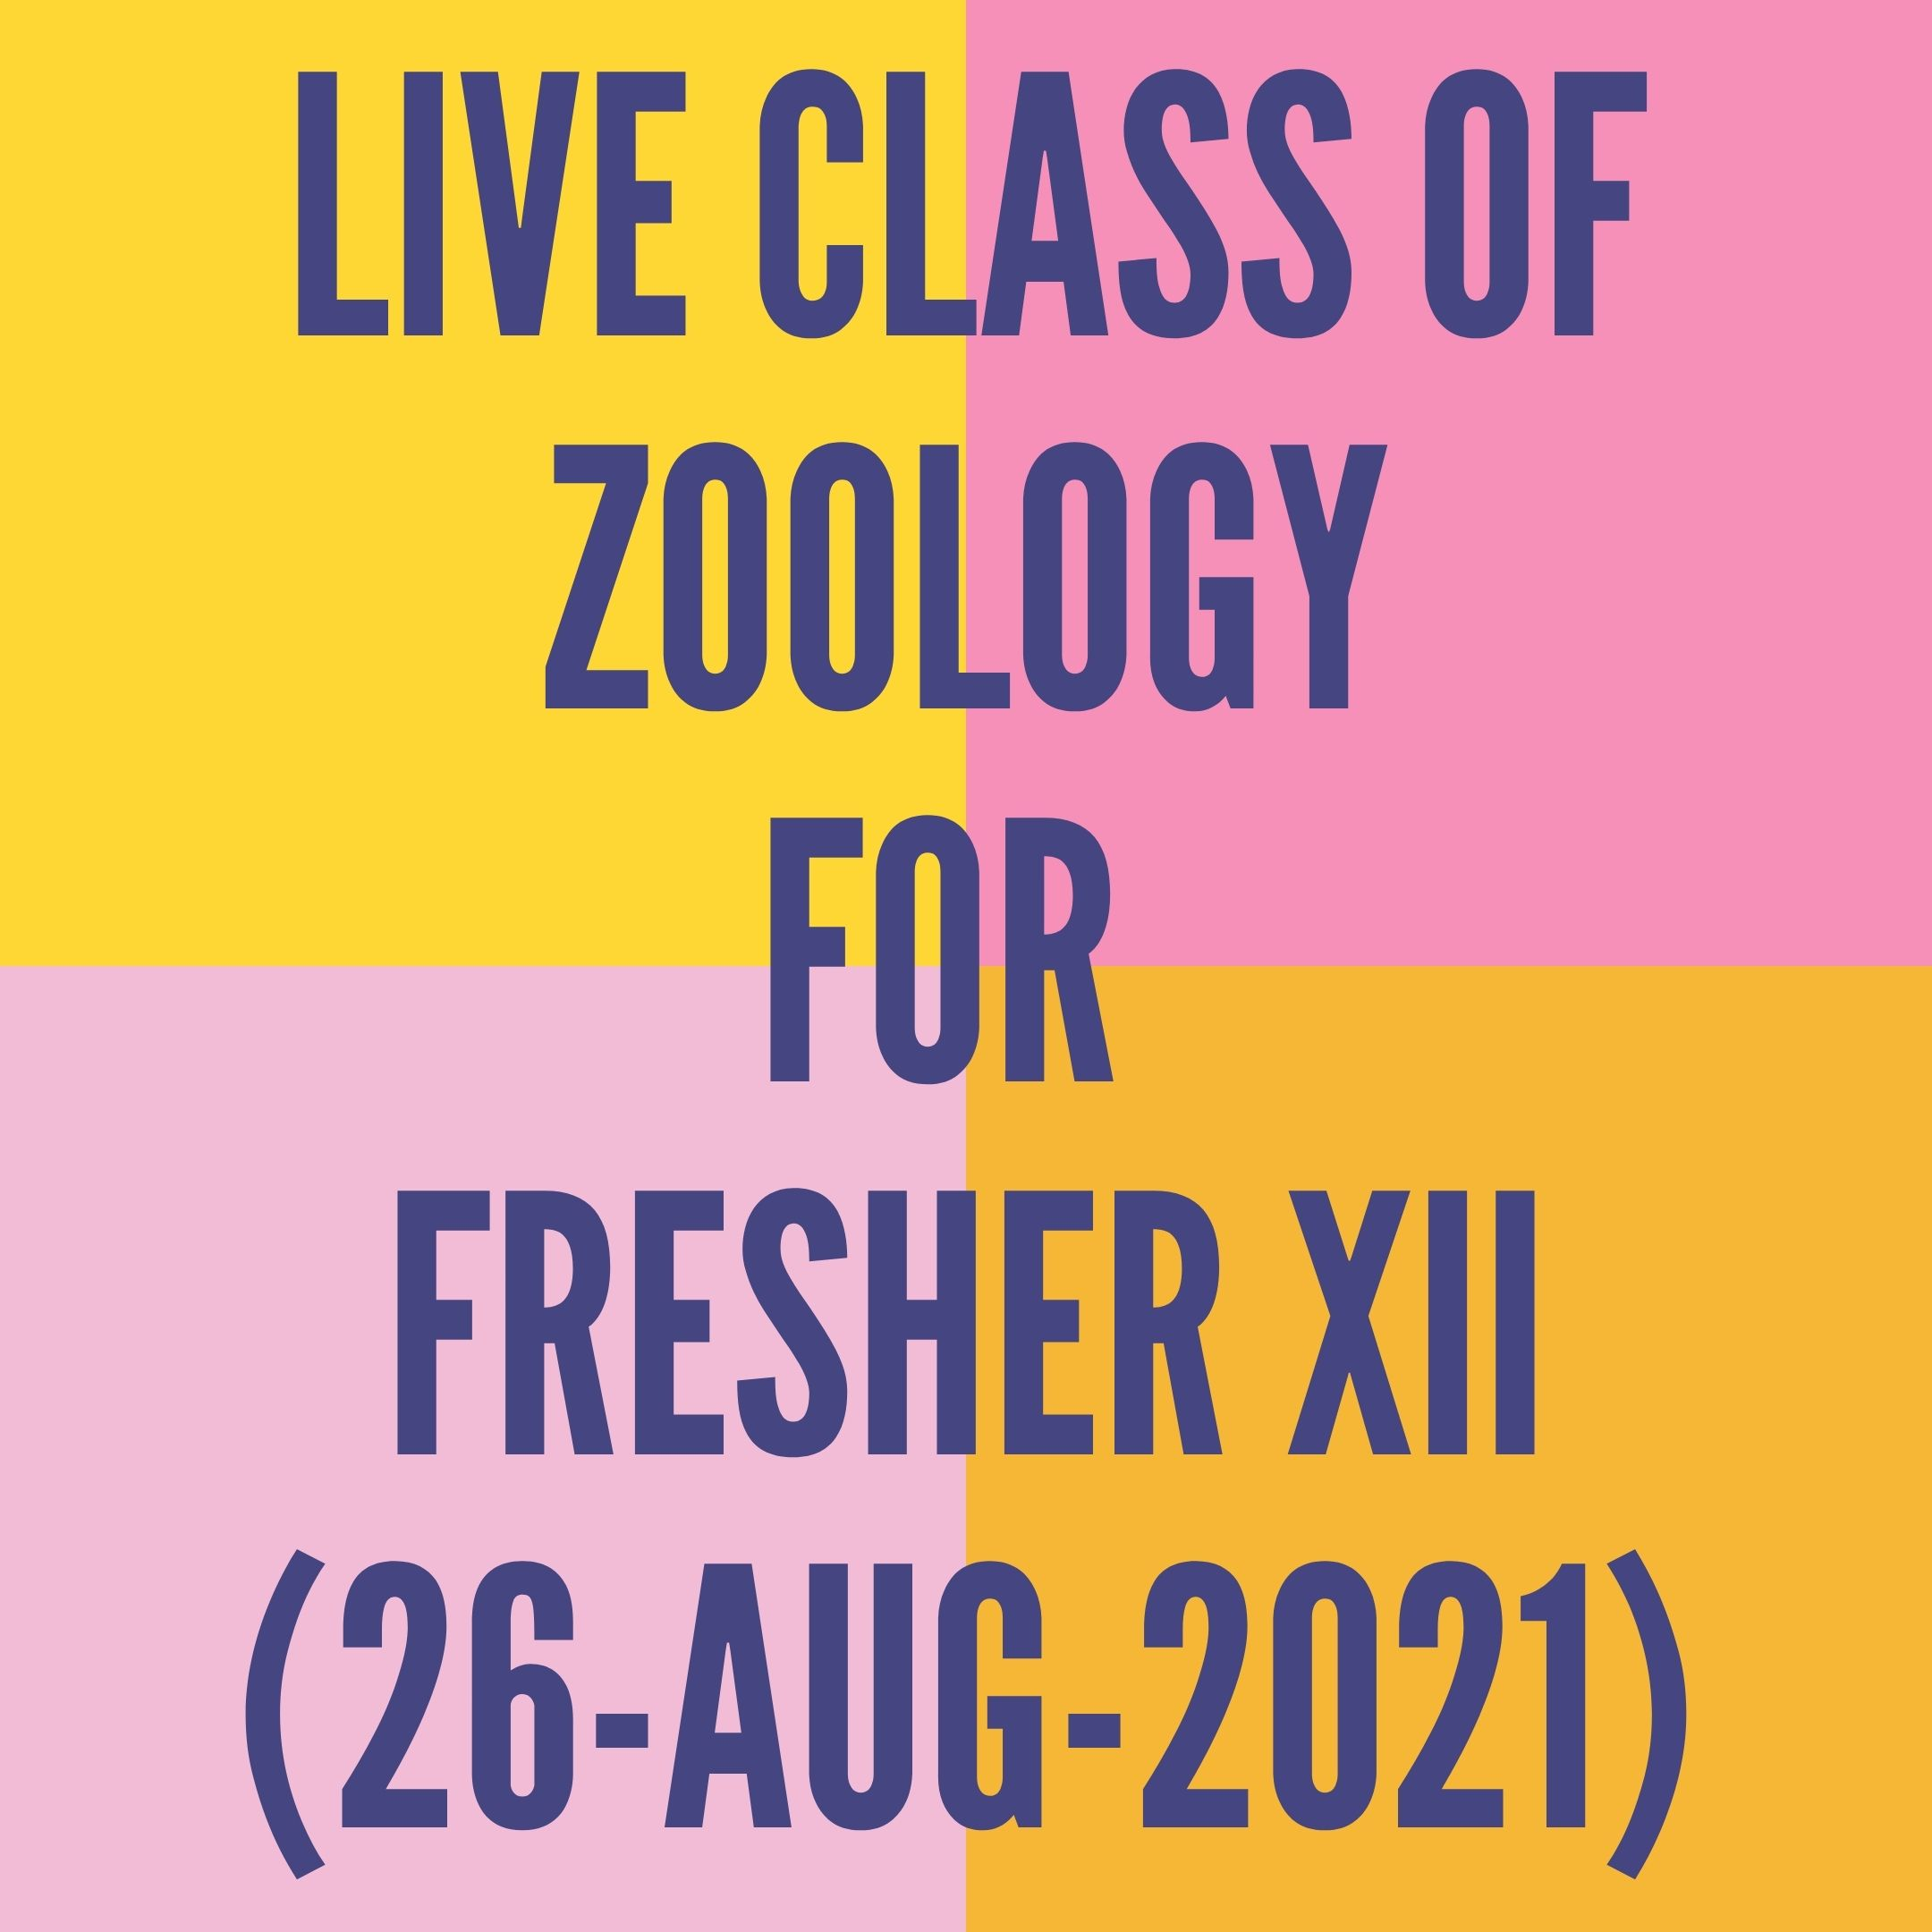 LIVE CLASS OF ZOOLOGY FOR FRESHER XII (26-AUG-2021) HUMAN HEALTH & DISEASE